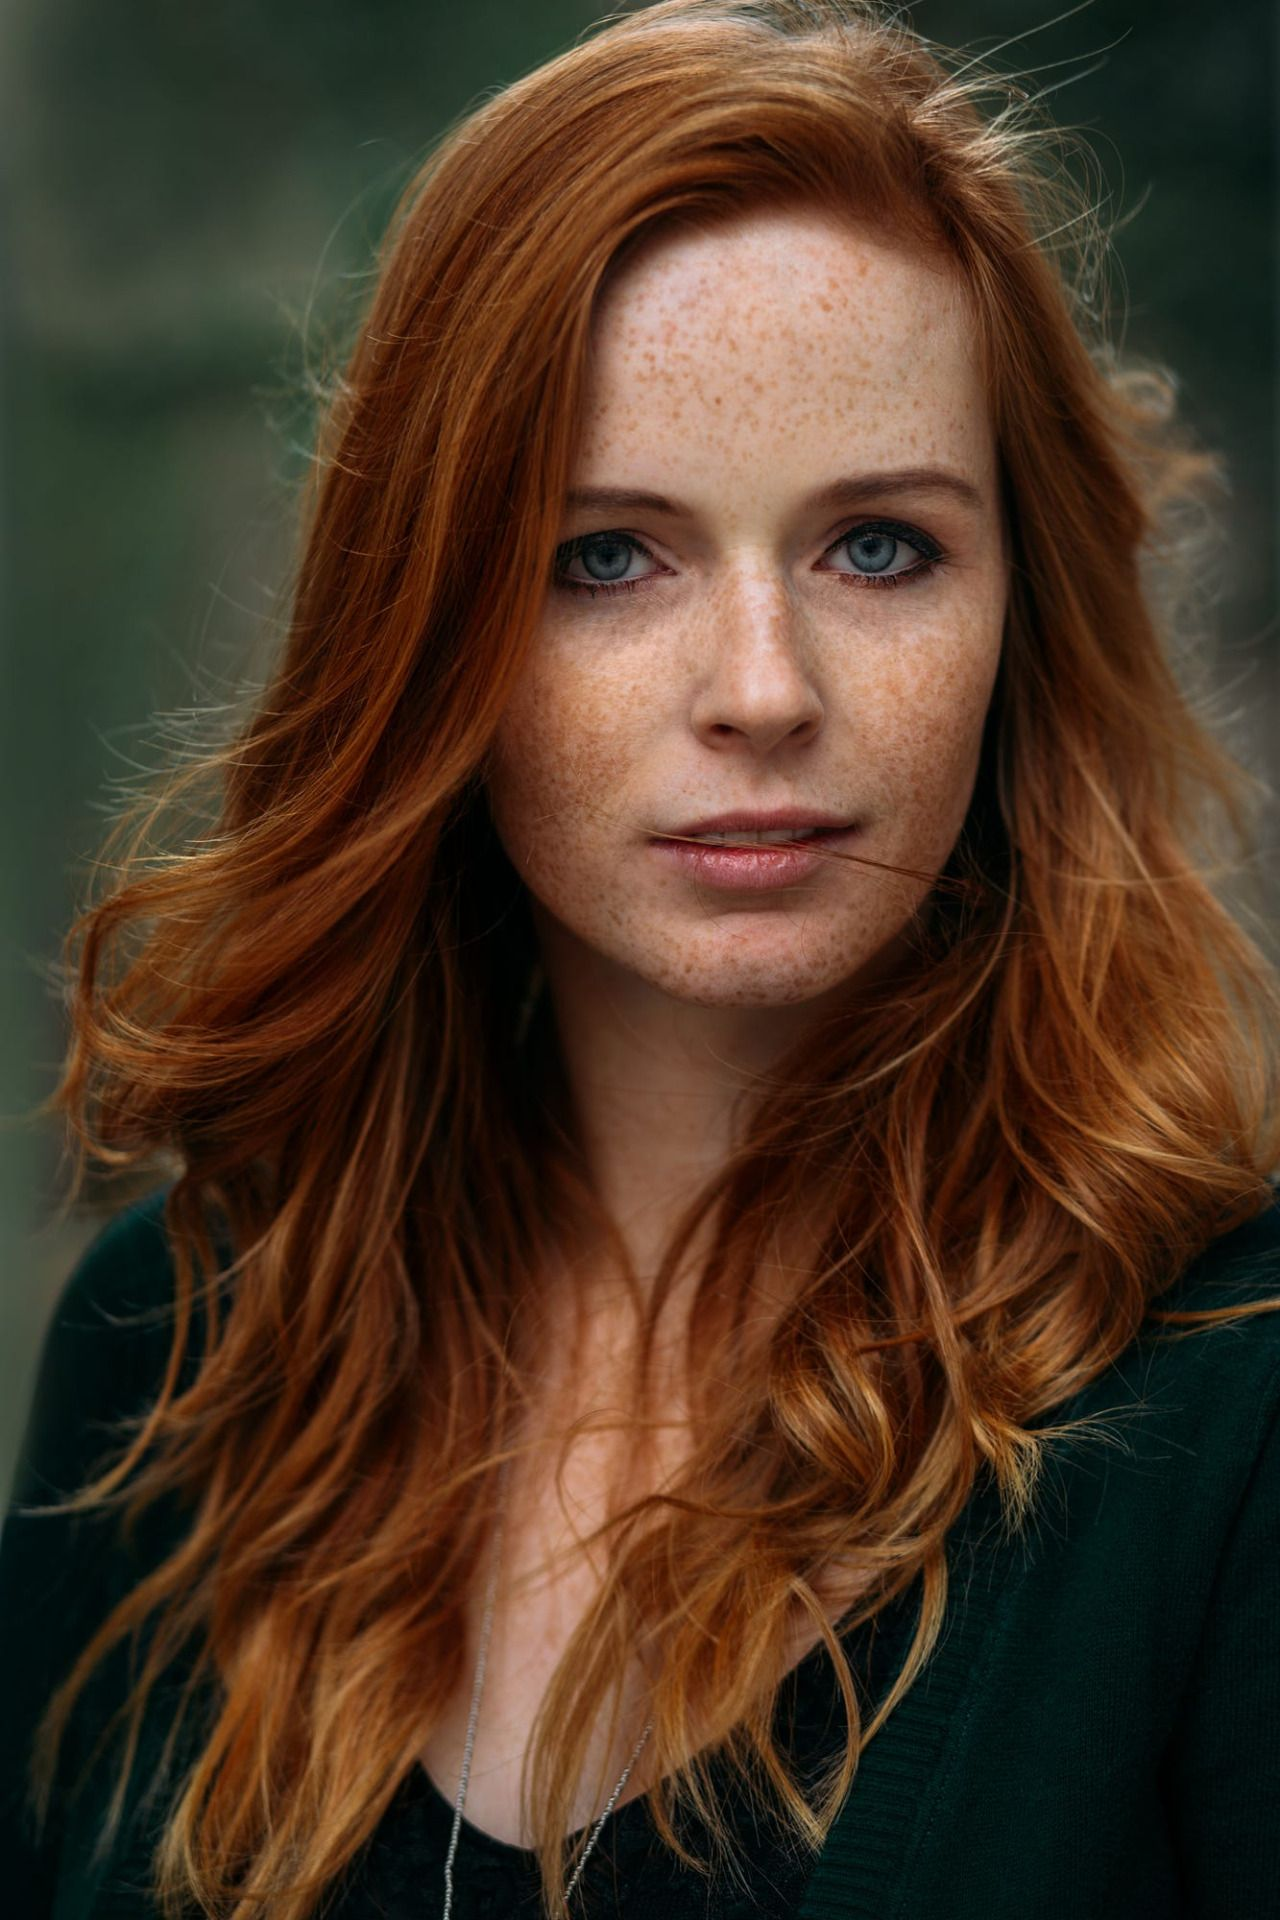 Lovely Young Red Haired Model With Freckles. Woman With